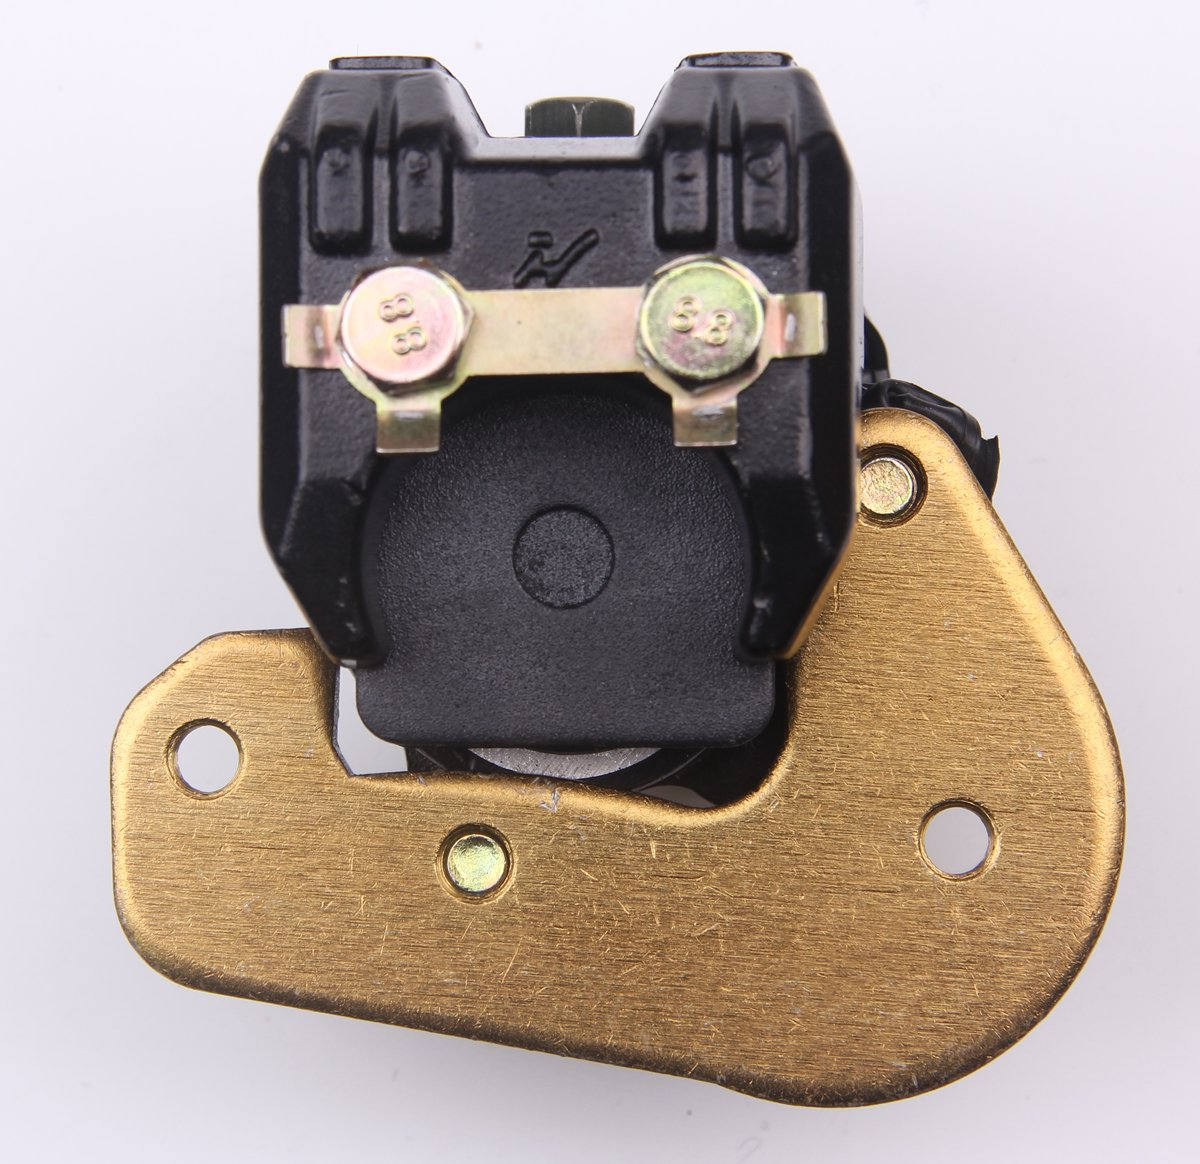 New Rear Brake Caliper For Honda Sportrax 400 TRX400EX TRX 400X 05-14 With Pads by Goodbest (Image #1)